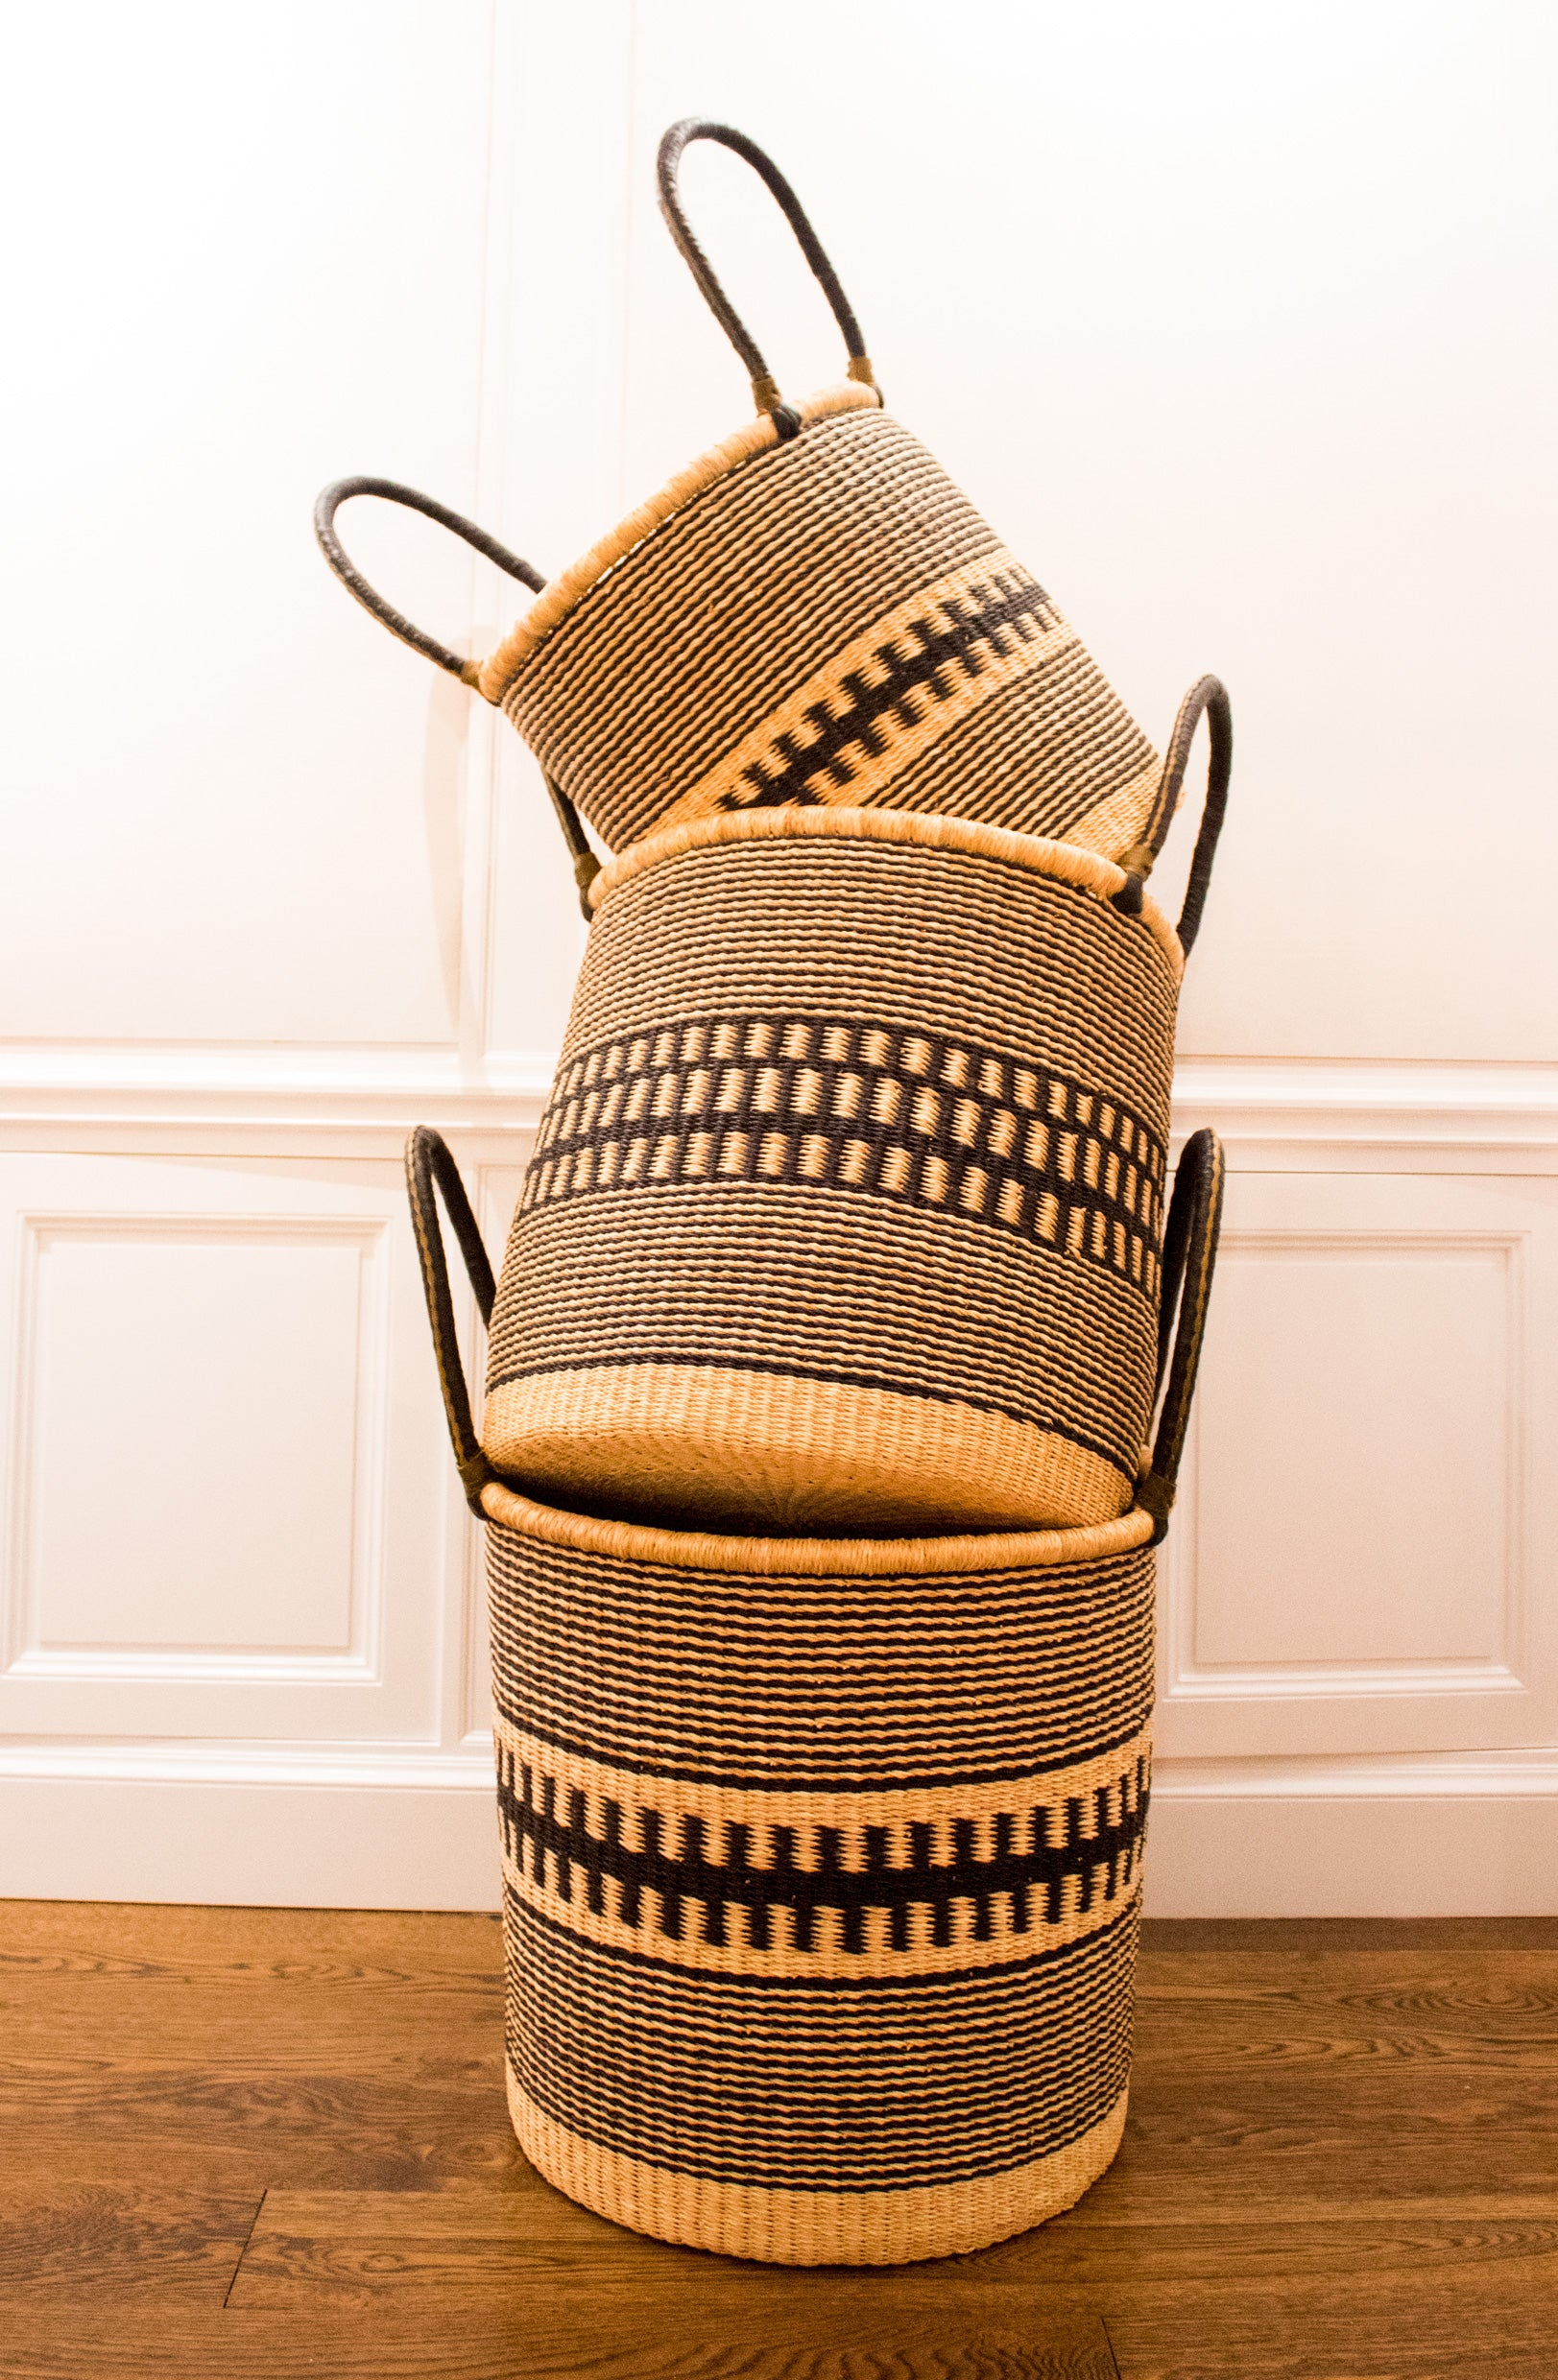 Handmade African Laundry Basket